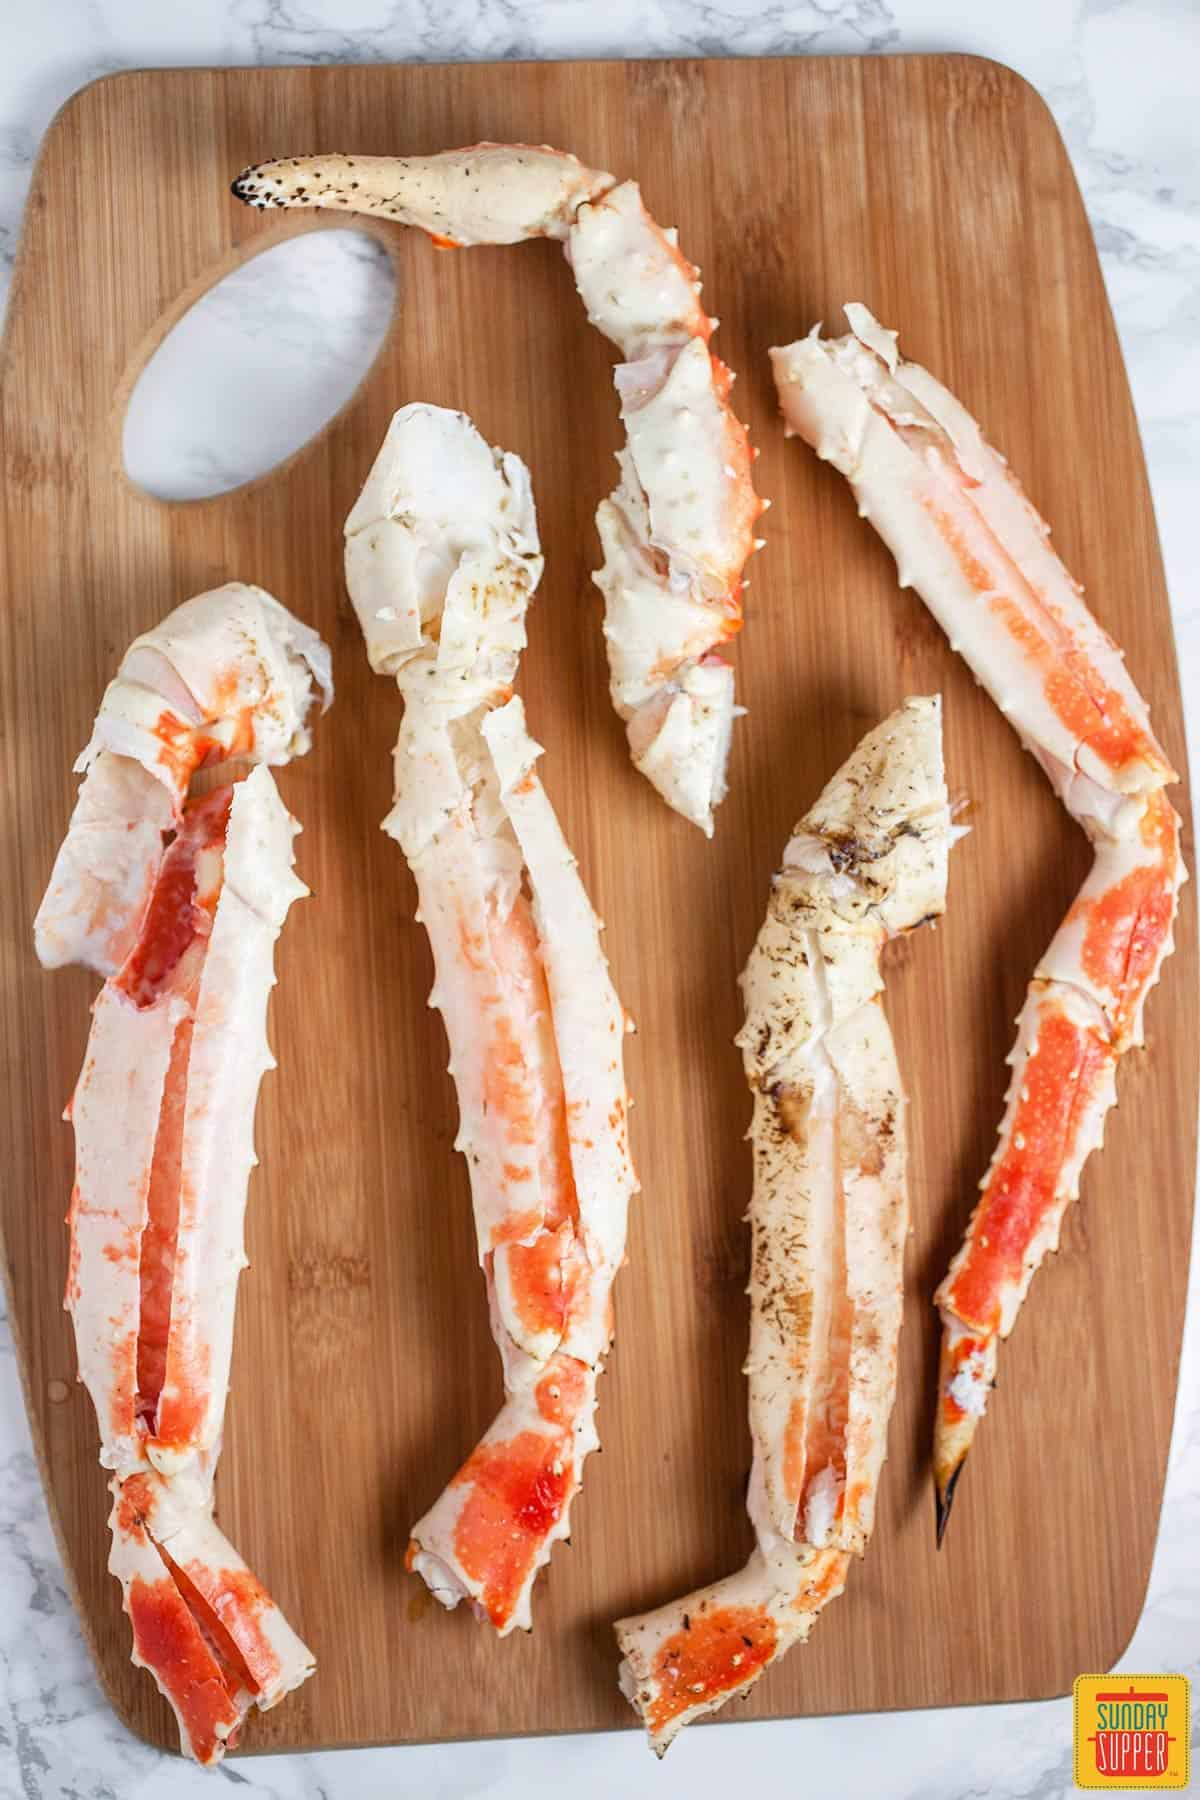 King crab legs on a wooden cutting board